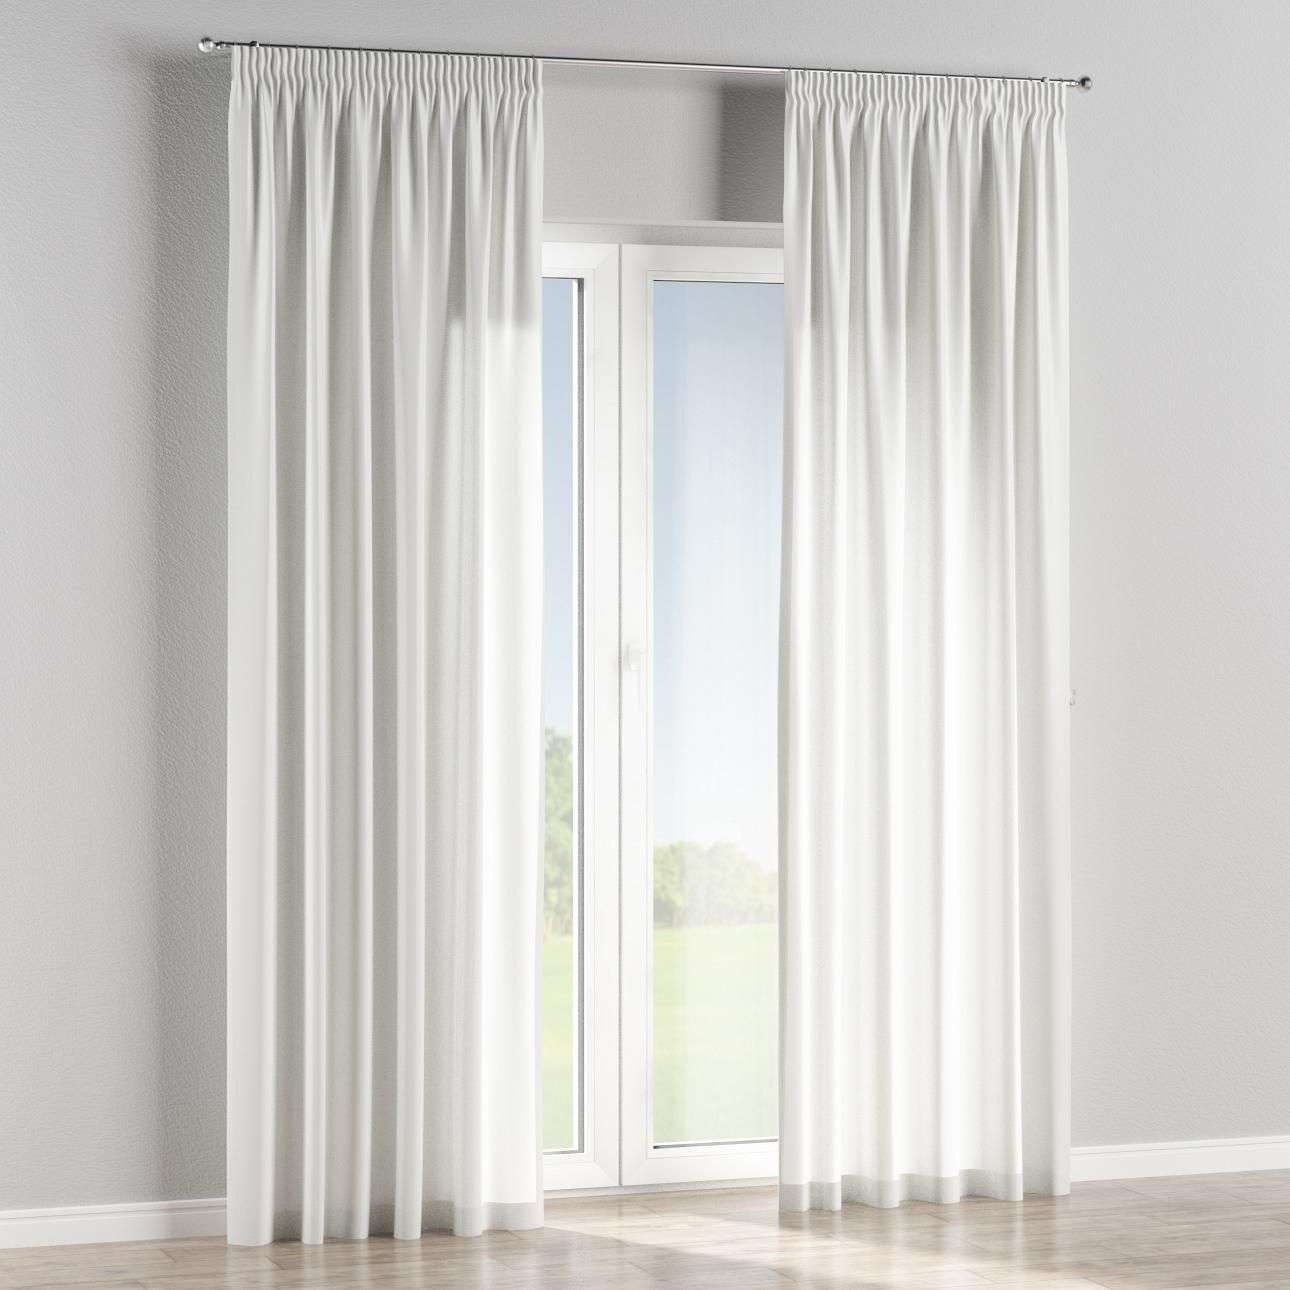 Pencil pleat curtains in collection SALE, fabric: 130-06